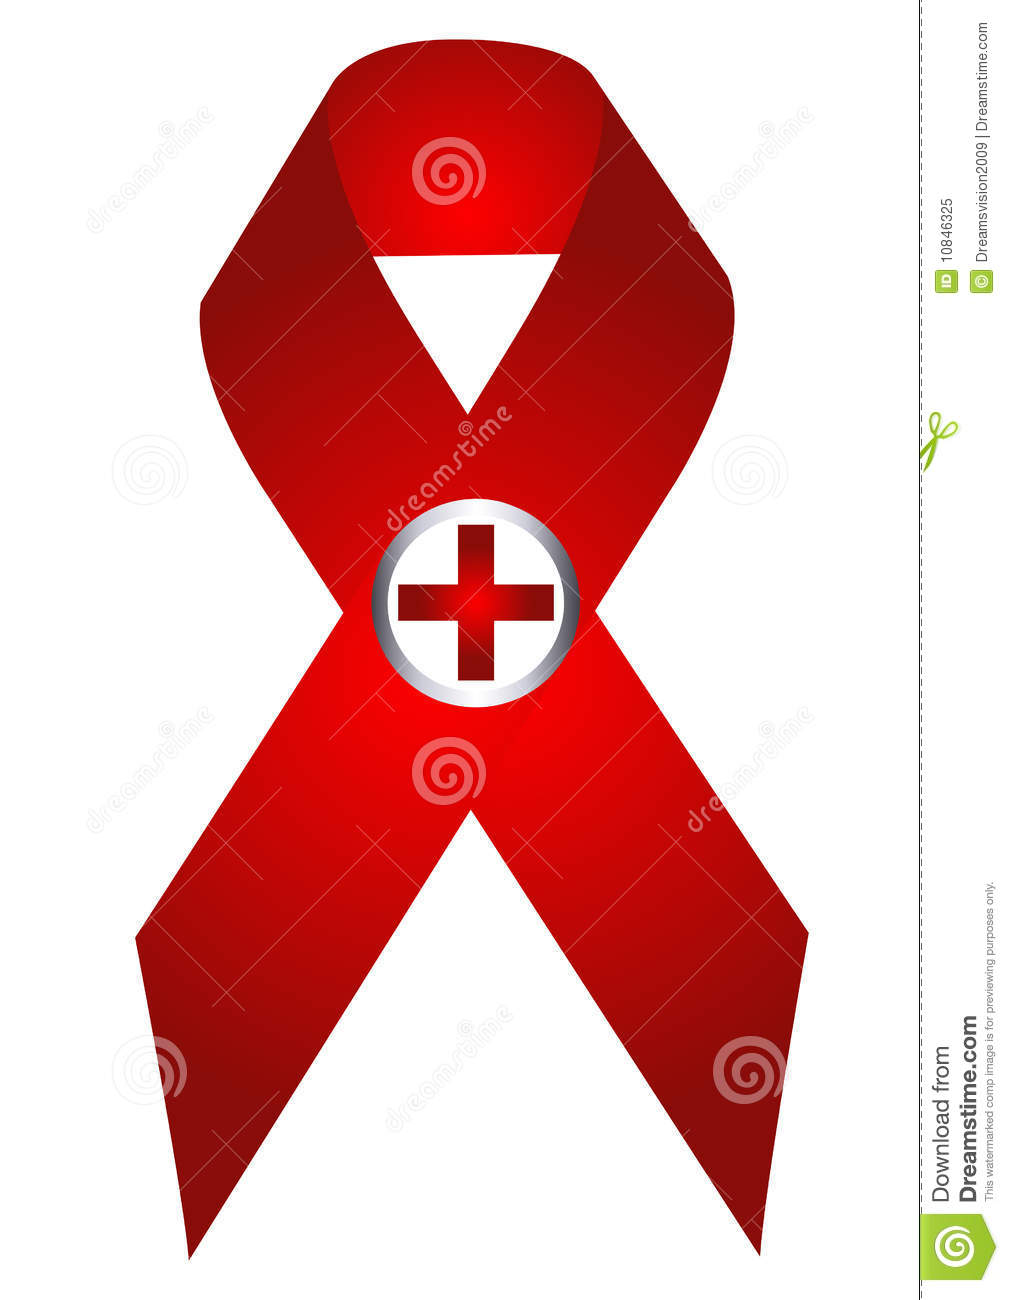 Aids symbol with red cross in white background eps.